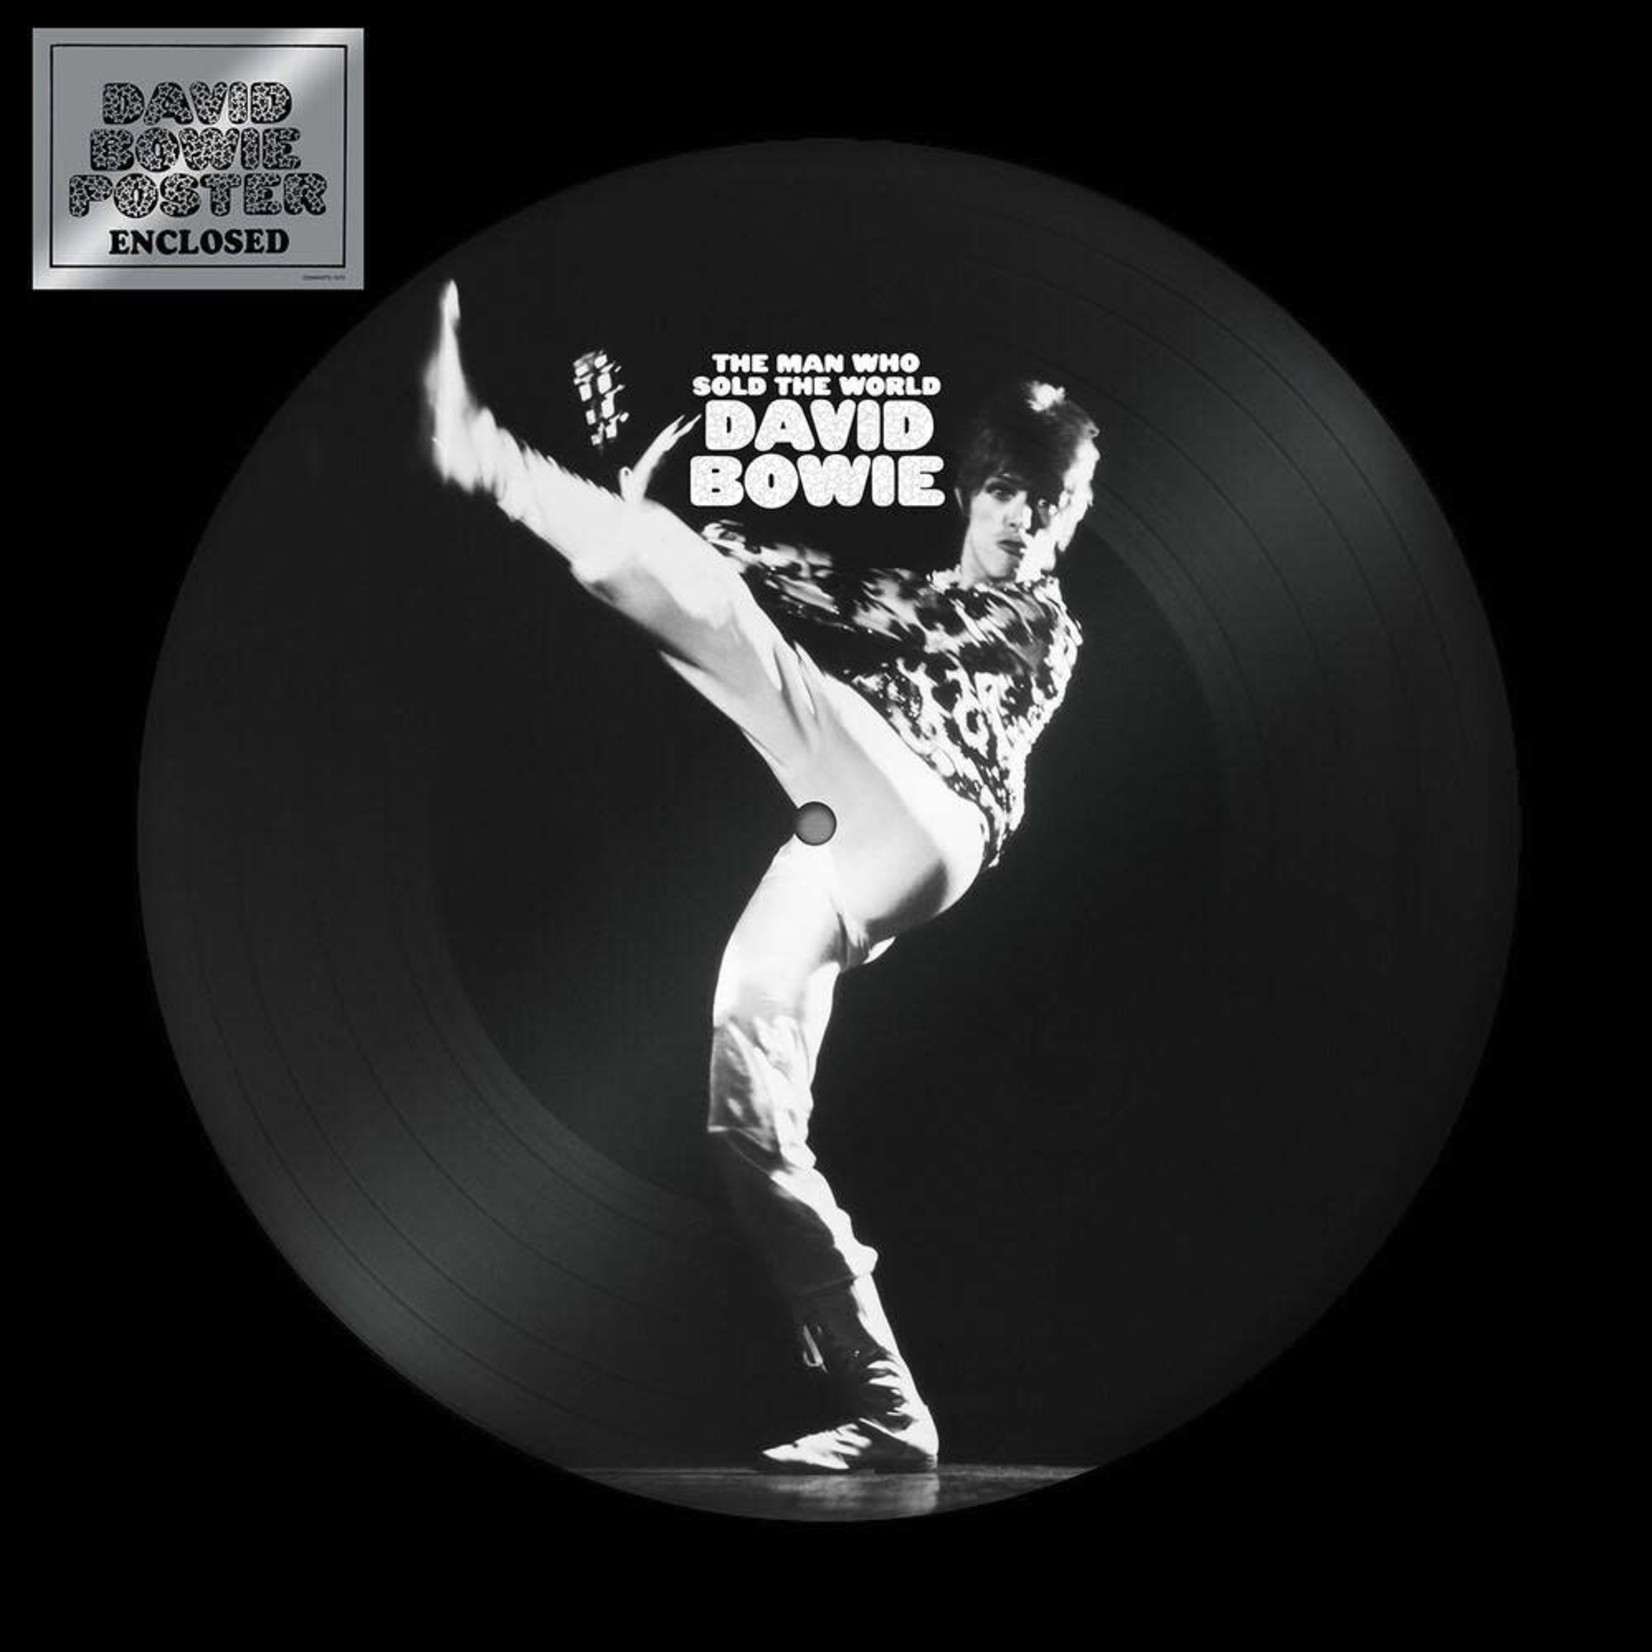 [New] Bowie, David: The Man Who Sold The World (picture disc)